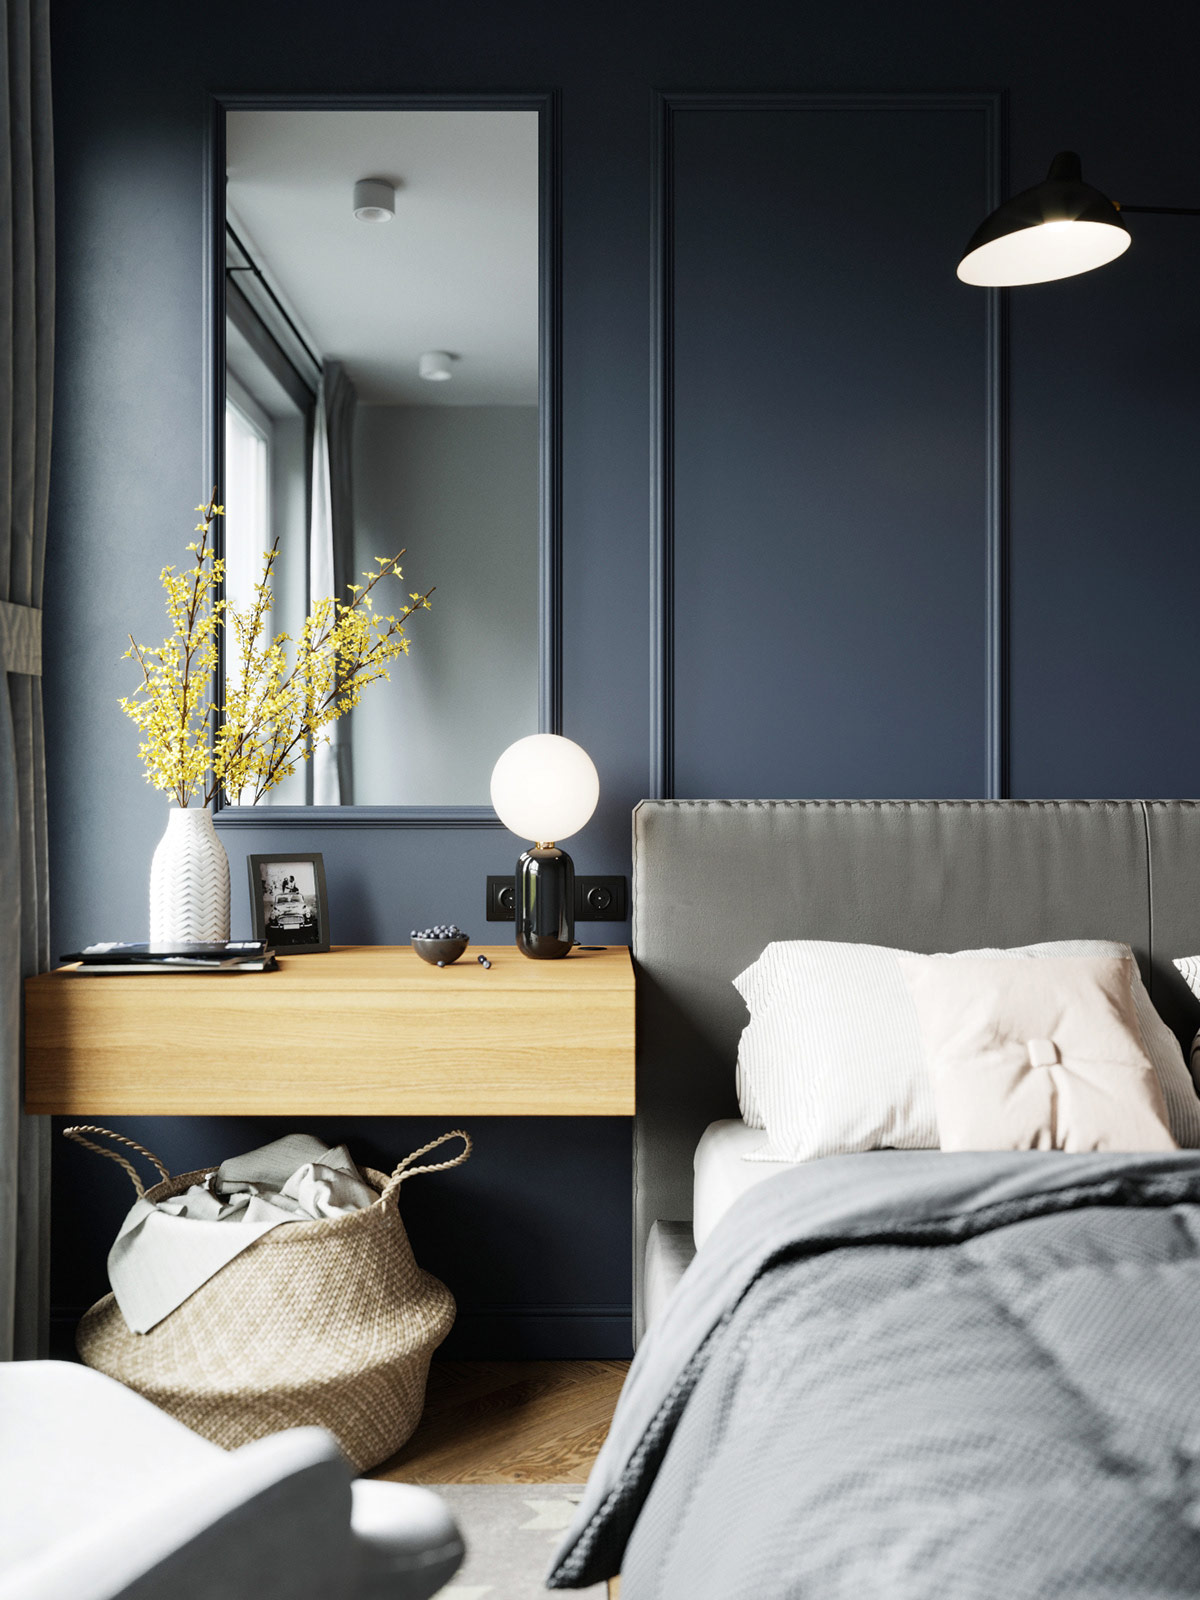 Jewel Tone Colors In A Contemporary Two Bedroom Apartment